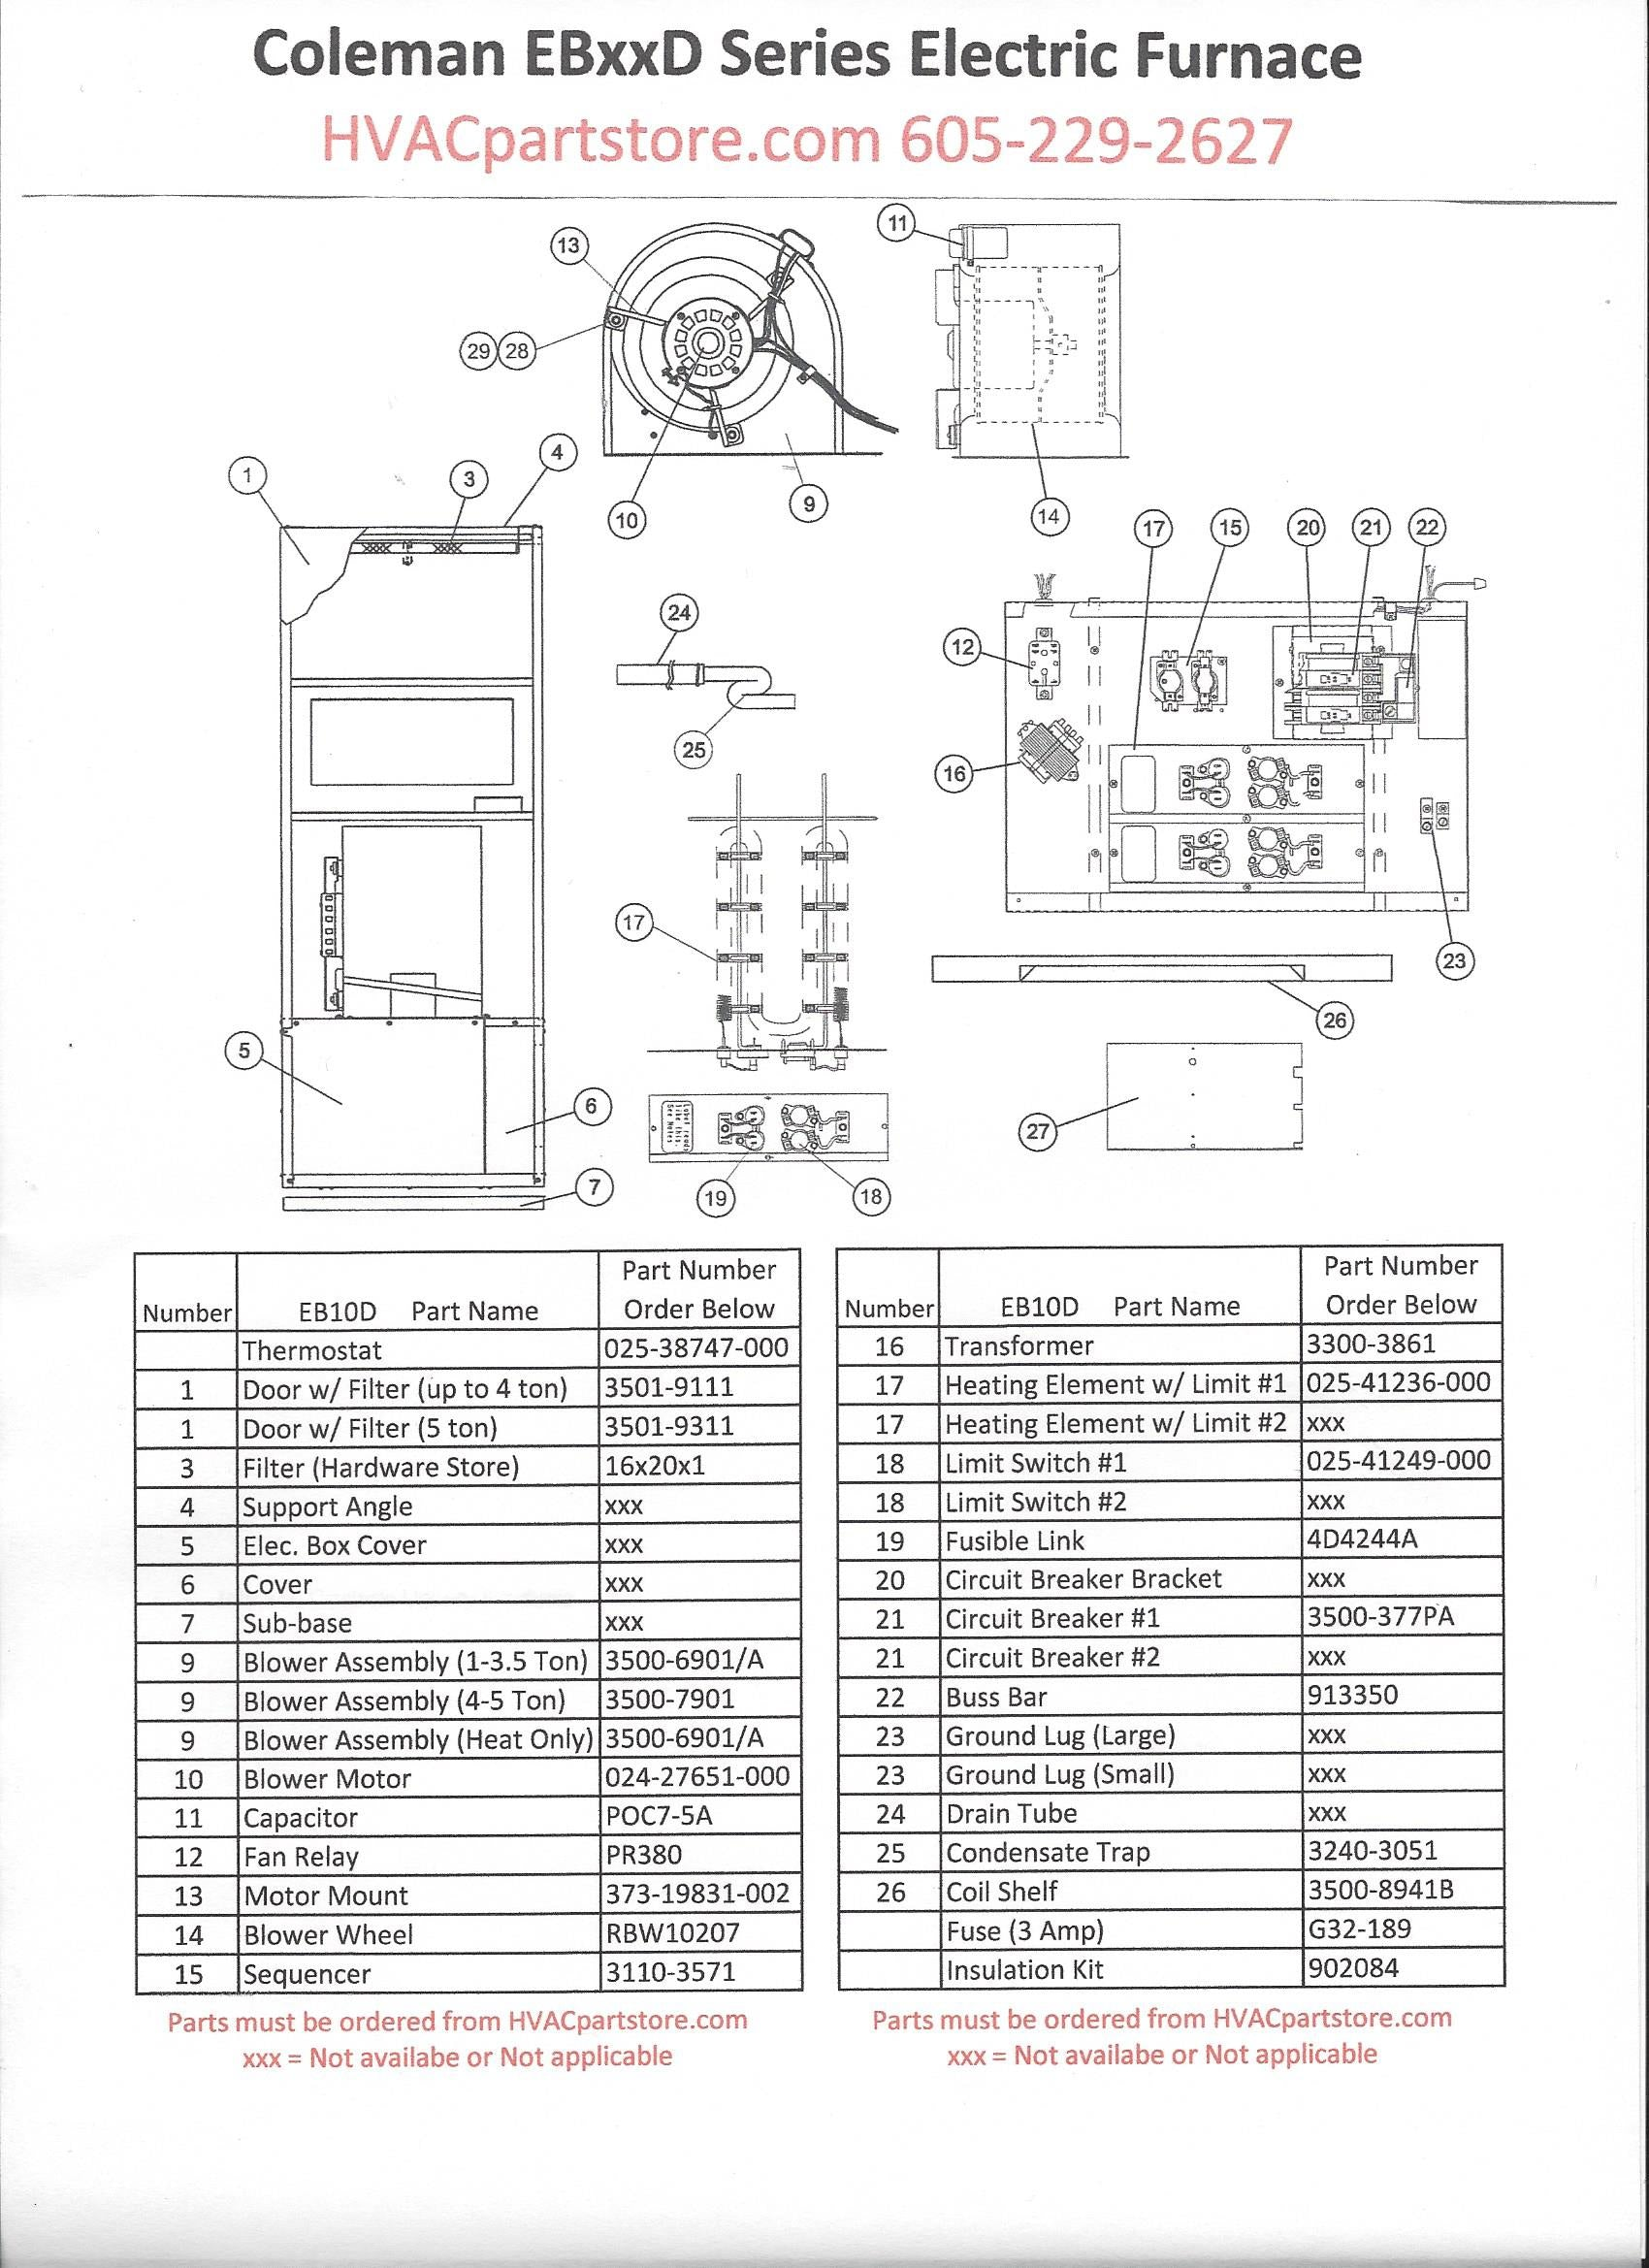 Coleman Electric Furnace Wiring - WIRE Center • on coleman manufactured home furnace wiring, coleman evcon schematic, coleman furnace manual, coleman electric furnace parts, coleman gas furnace diagram, coleman electric furnace capacitor, heat sequencer schematic, coleman evcon furnace troubleshooting, coleman evcon eb15b, coleman furnace parts diagrams,